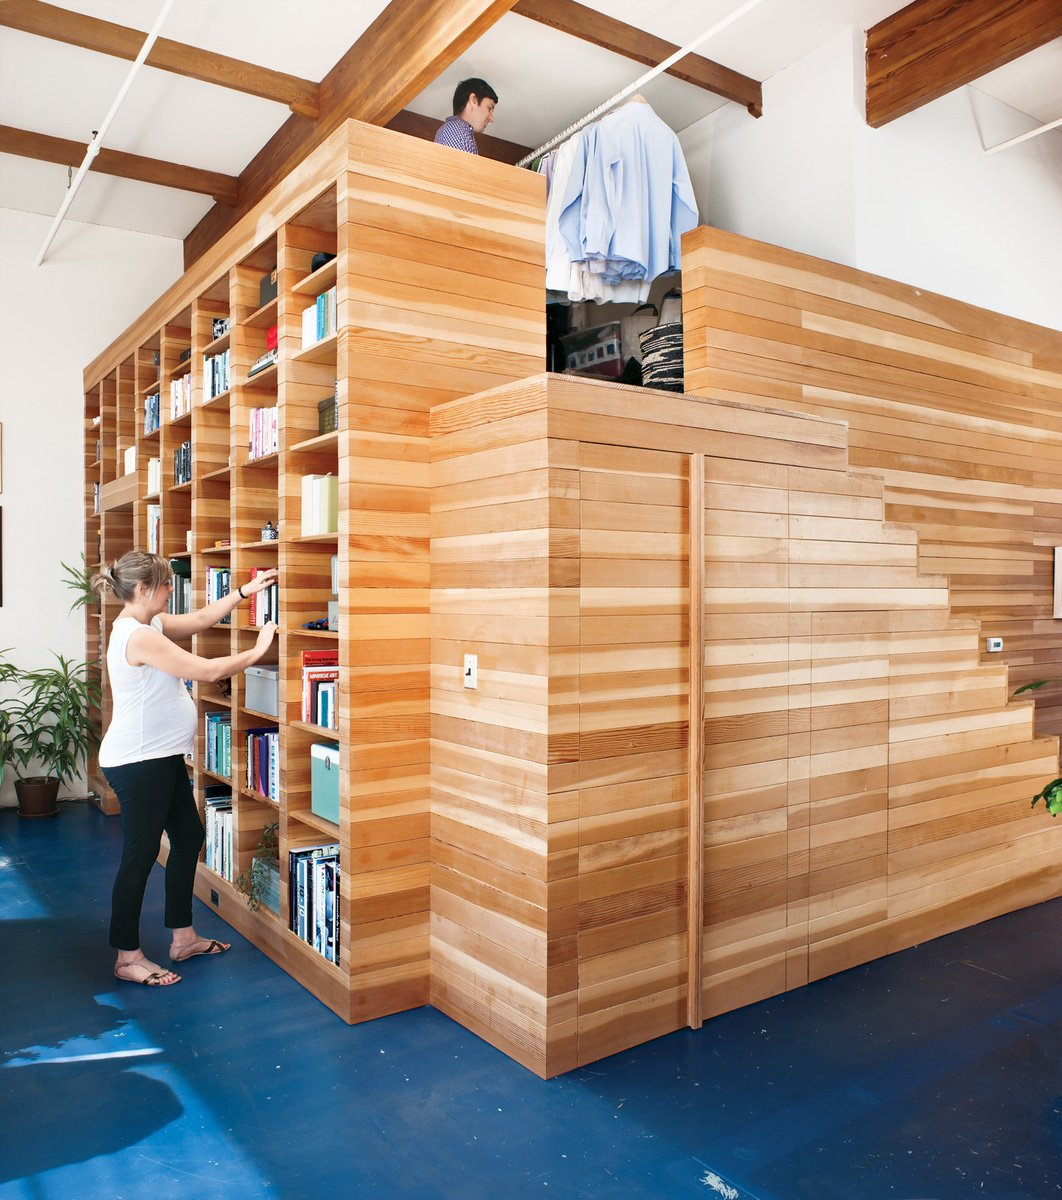 California homeowners Lynda and Peter Benoit designed a functional wooden structure to store books, keepsakes, and clothes. Photo by: Drew Kelly  Read from Best of #ModernMonday: The Changing Modern Home